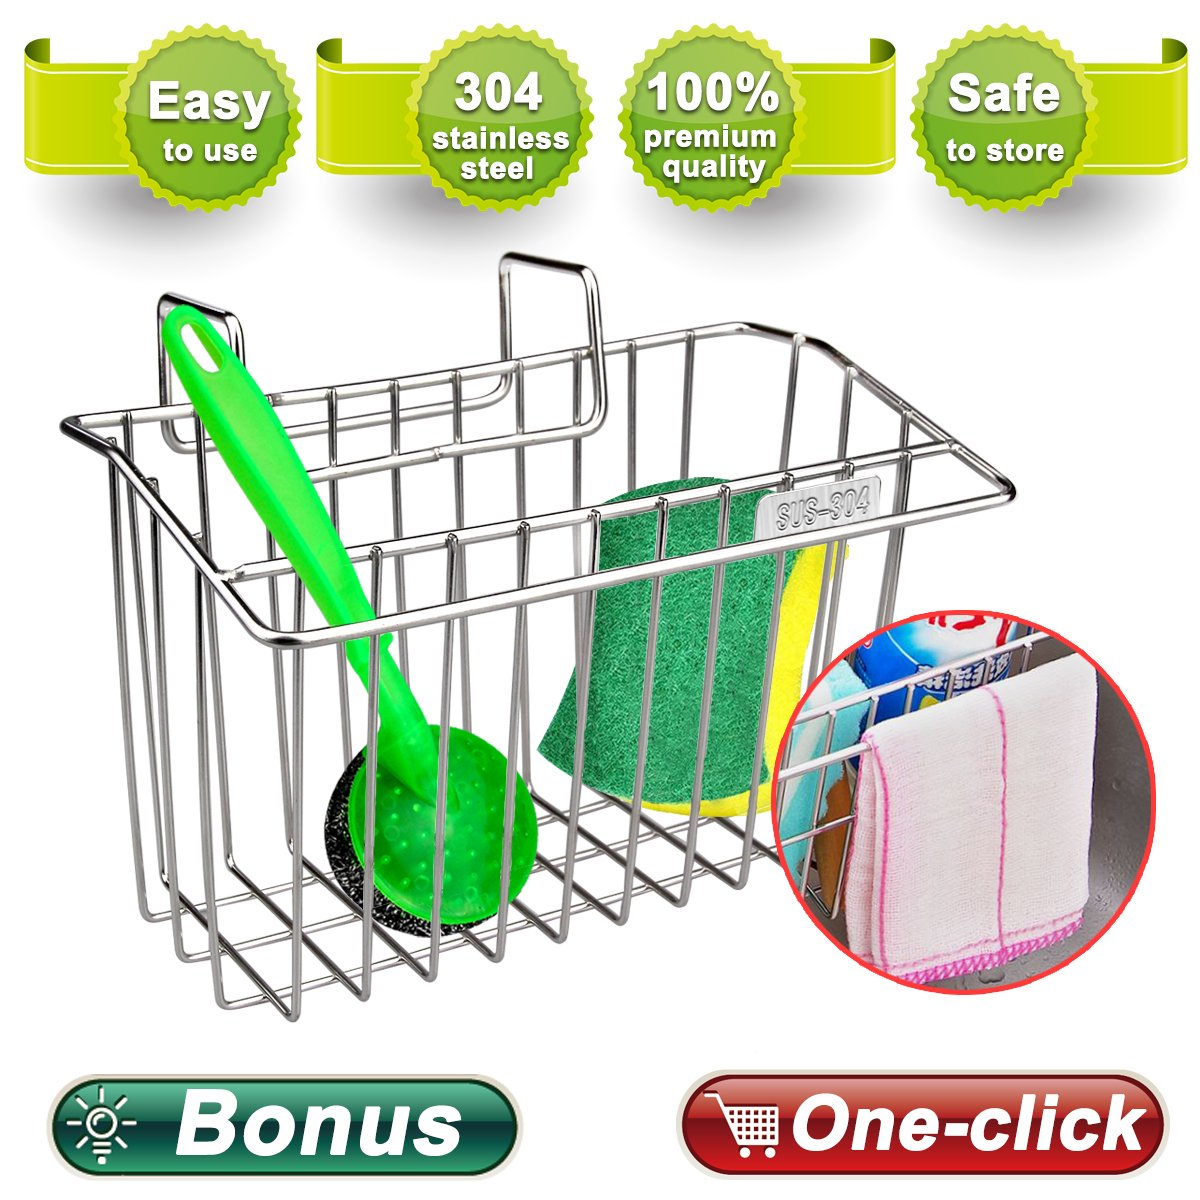 Zolove 2nd generation Sponge Holder, Upgrade Stainless Steel Sink Caddy Dishwashing Liquid Drainer Rack Sink Organizer for Brush Soap Towel and Sink Supplies with extra Bonus-A Sponge and A Scrubber. by Zolove